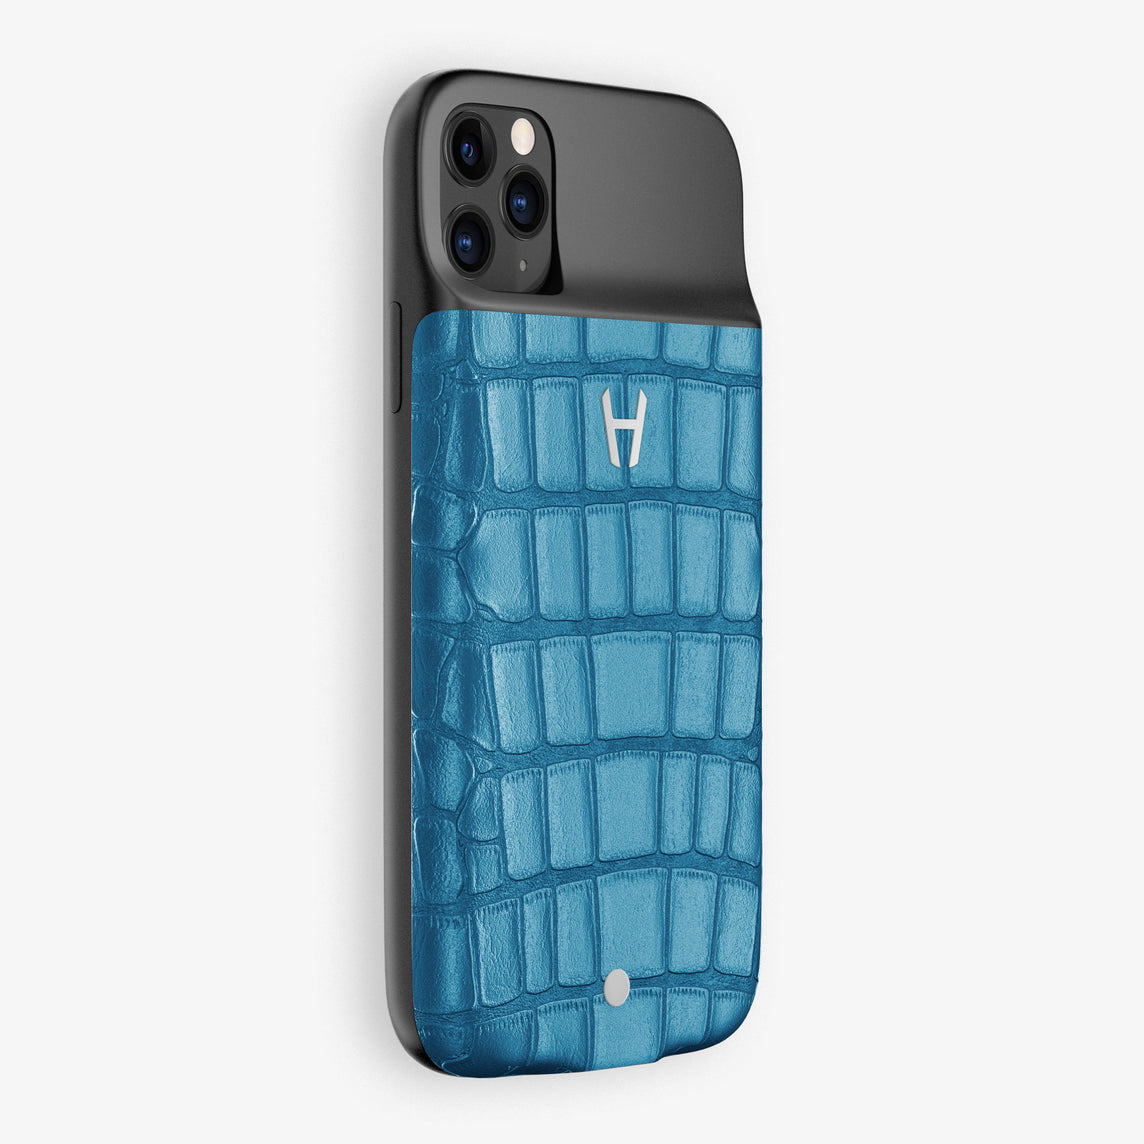 Alligator Battery Case iPhone 11 Pro Max | Blue Lagoon - Stainless Steel